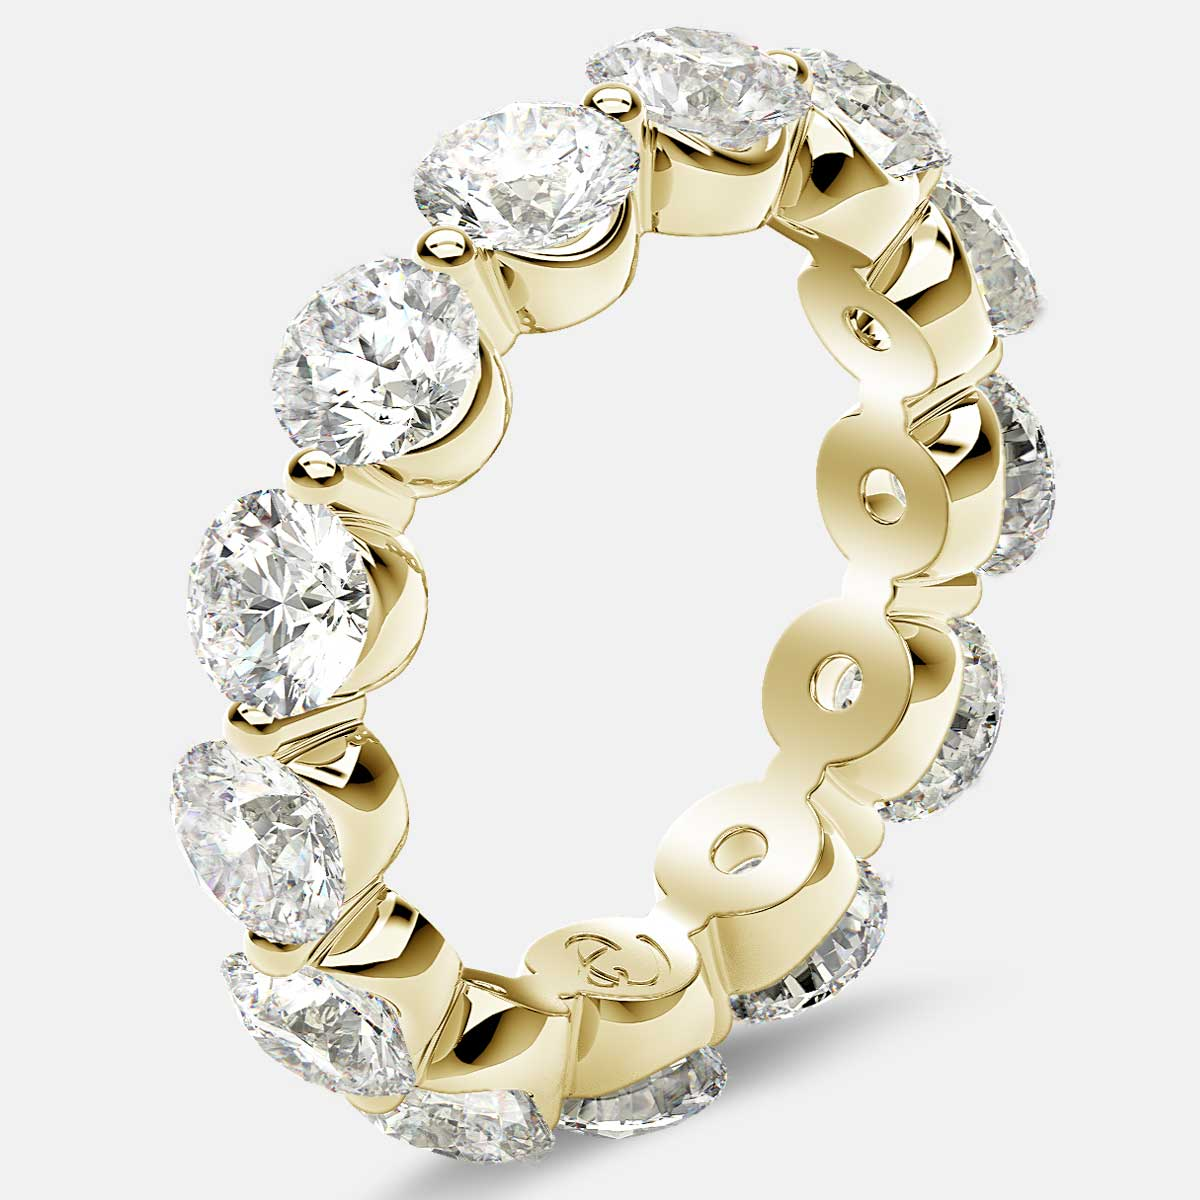 Floating Eternity Ring with Round Diamonds in 18k Yellow Gold